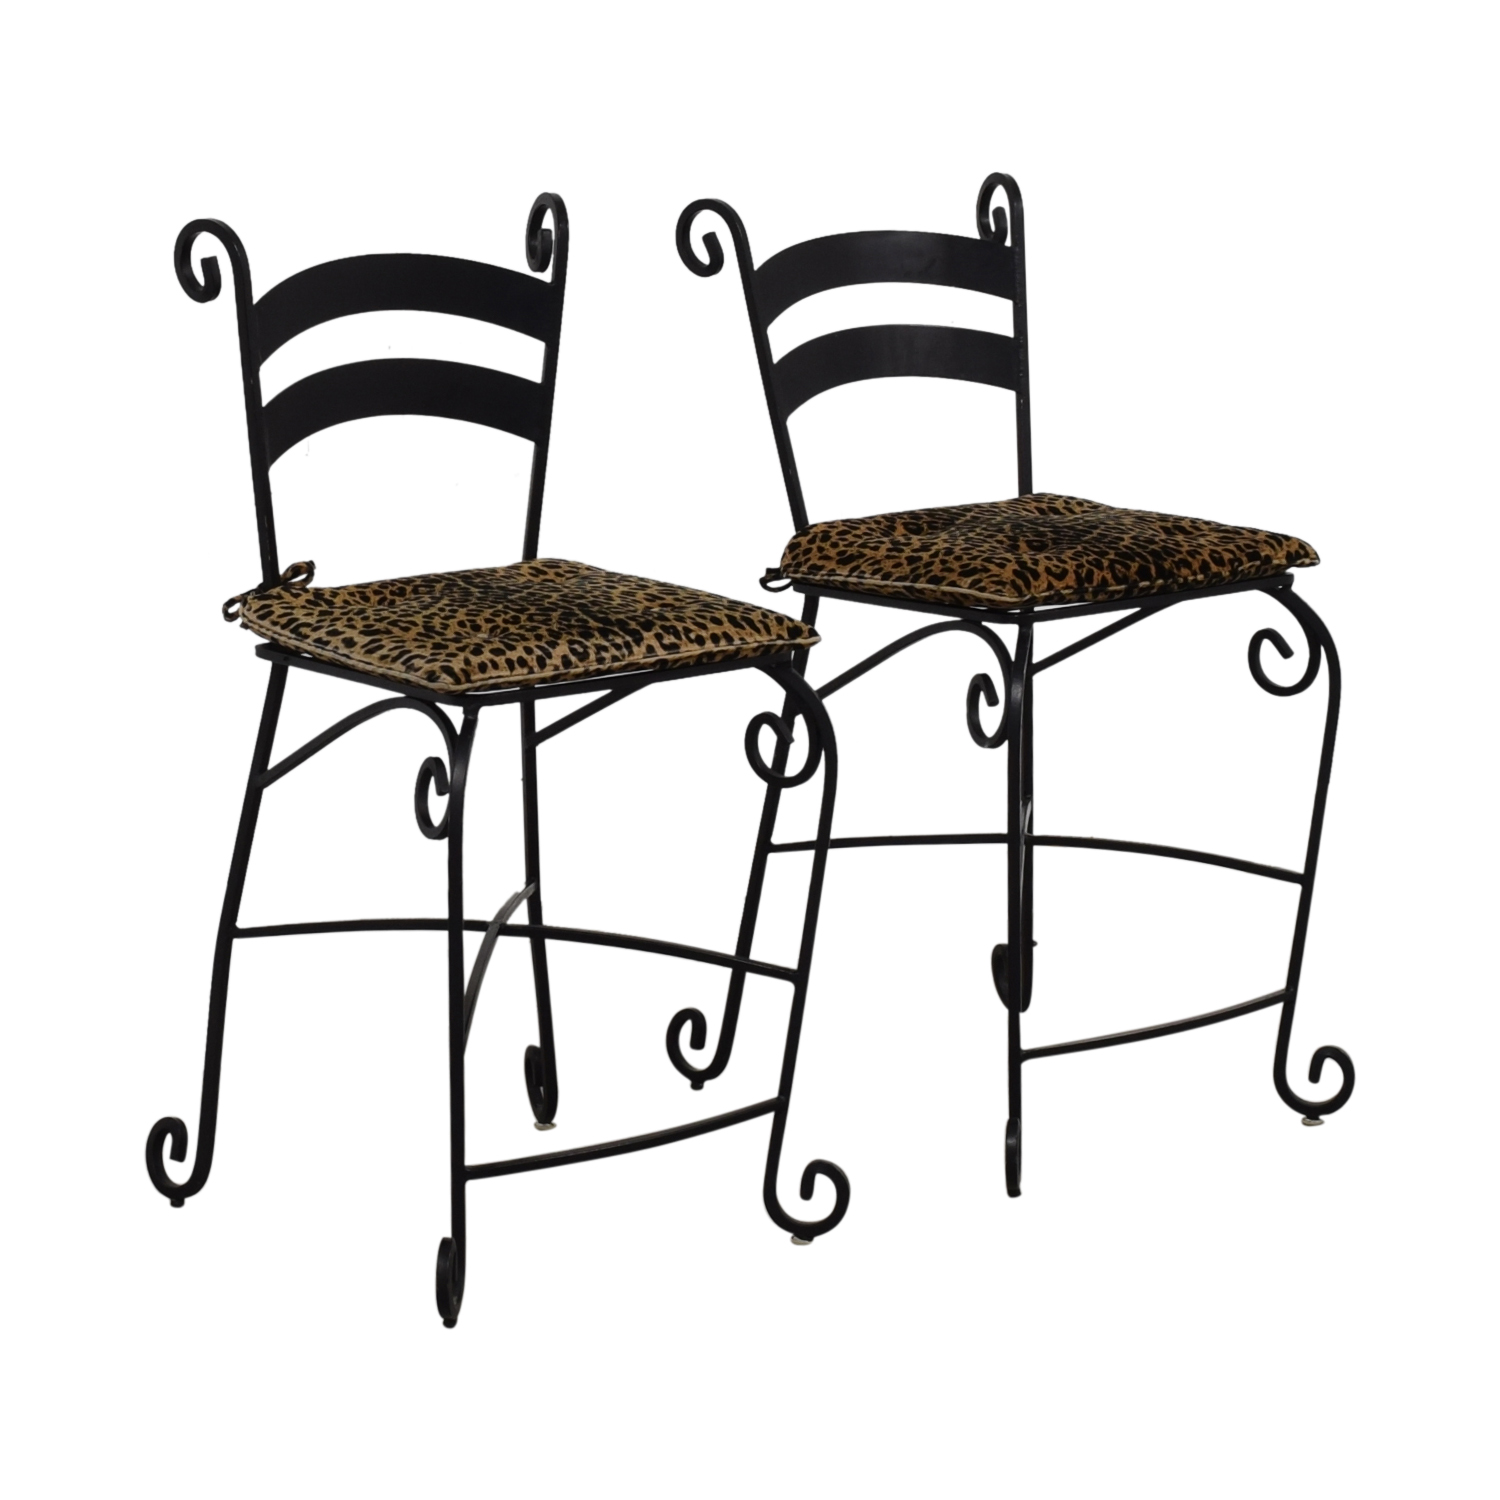 Leopard Counter Height Black Wrought Iron Stools on sale